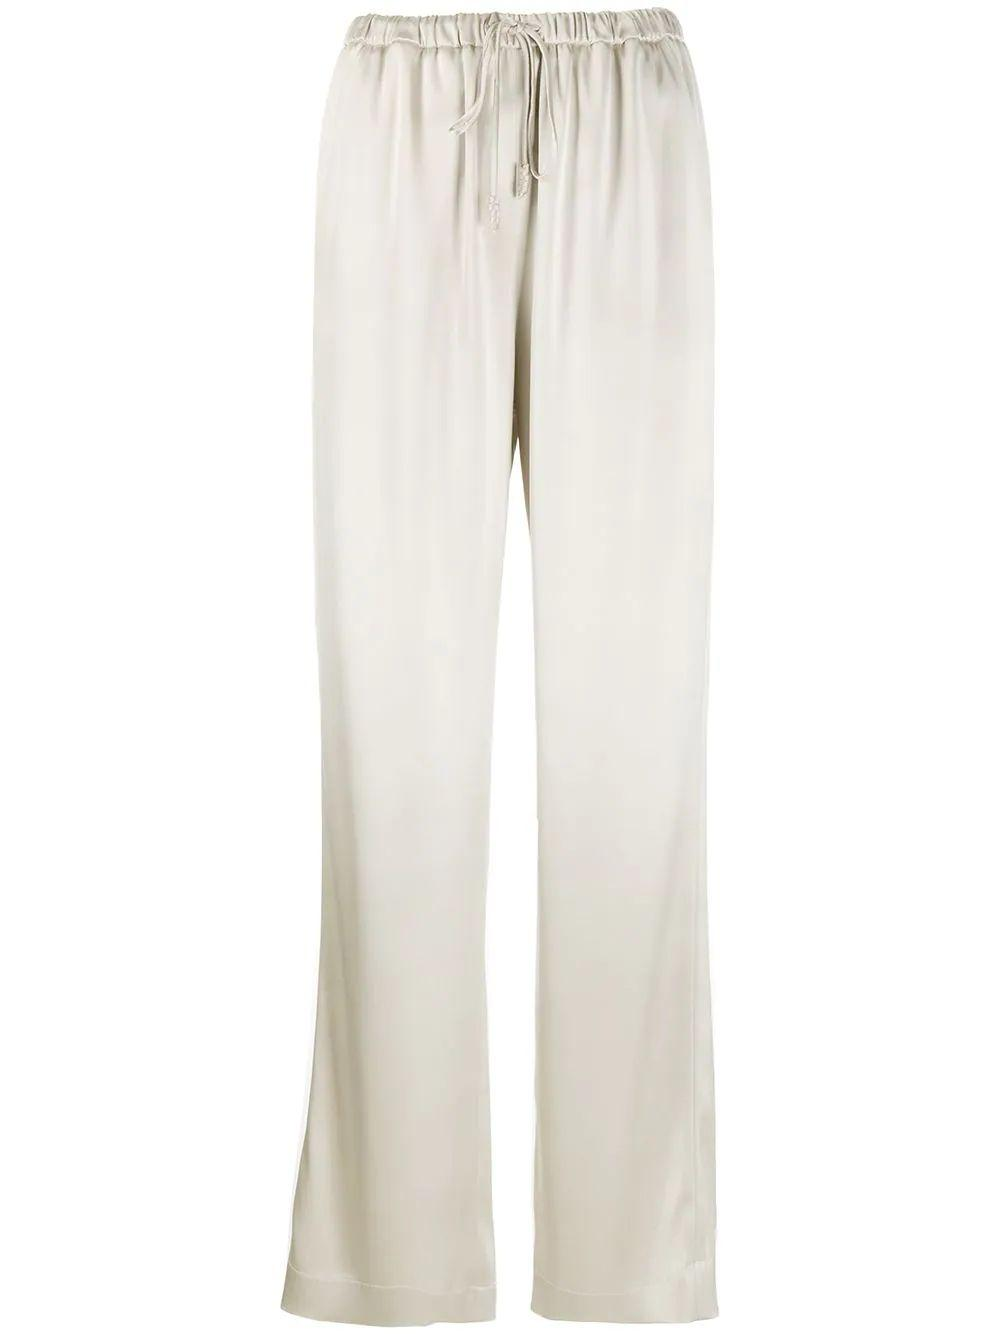 Tupsa Satin Pants